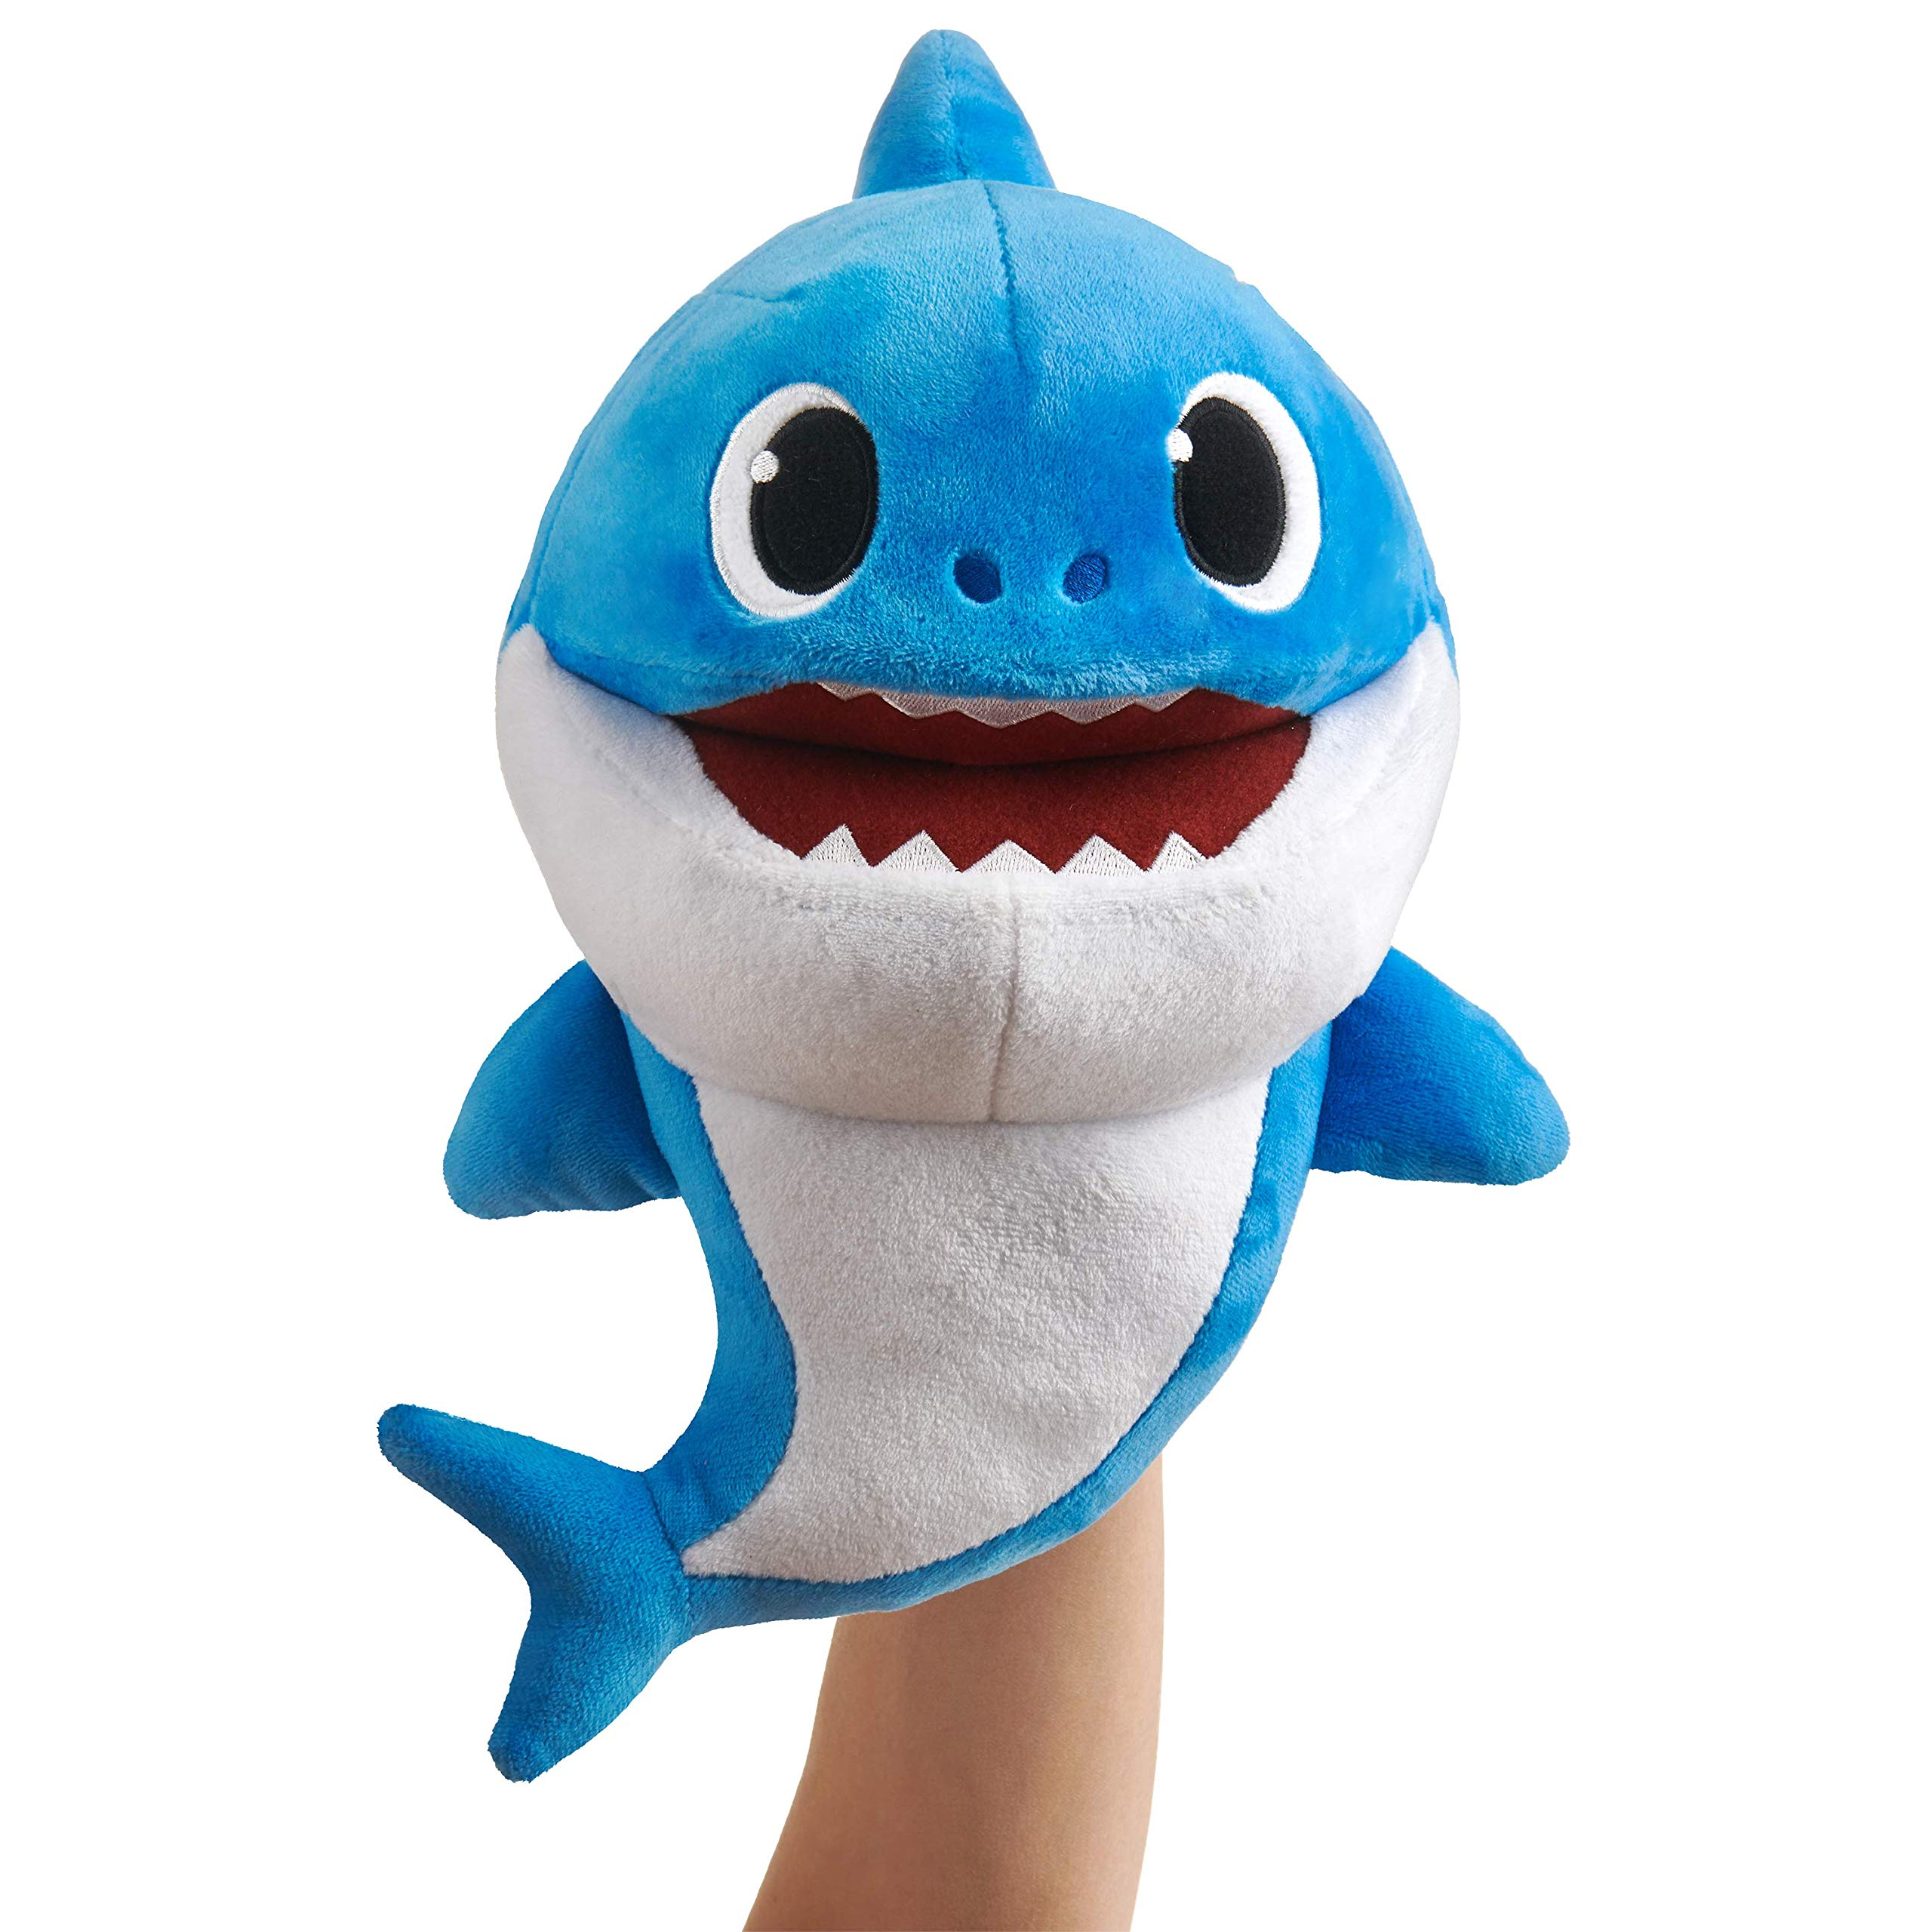 WowWee Pinkfong Baby Shark Official Song Puppet with Tempo Control - Daddy Shark - Interactive Preschool Plush Toy by WowWee